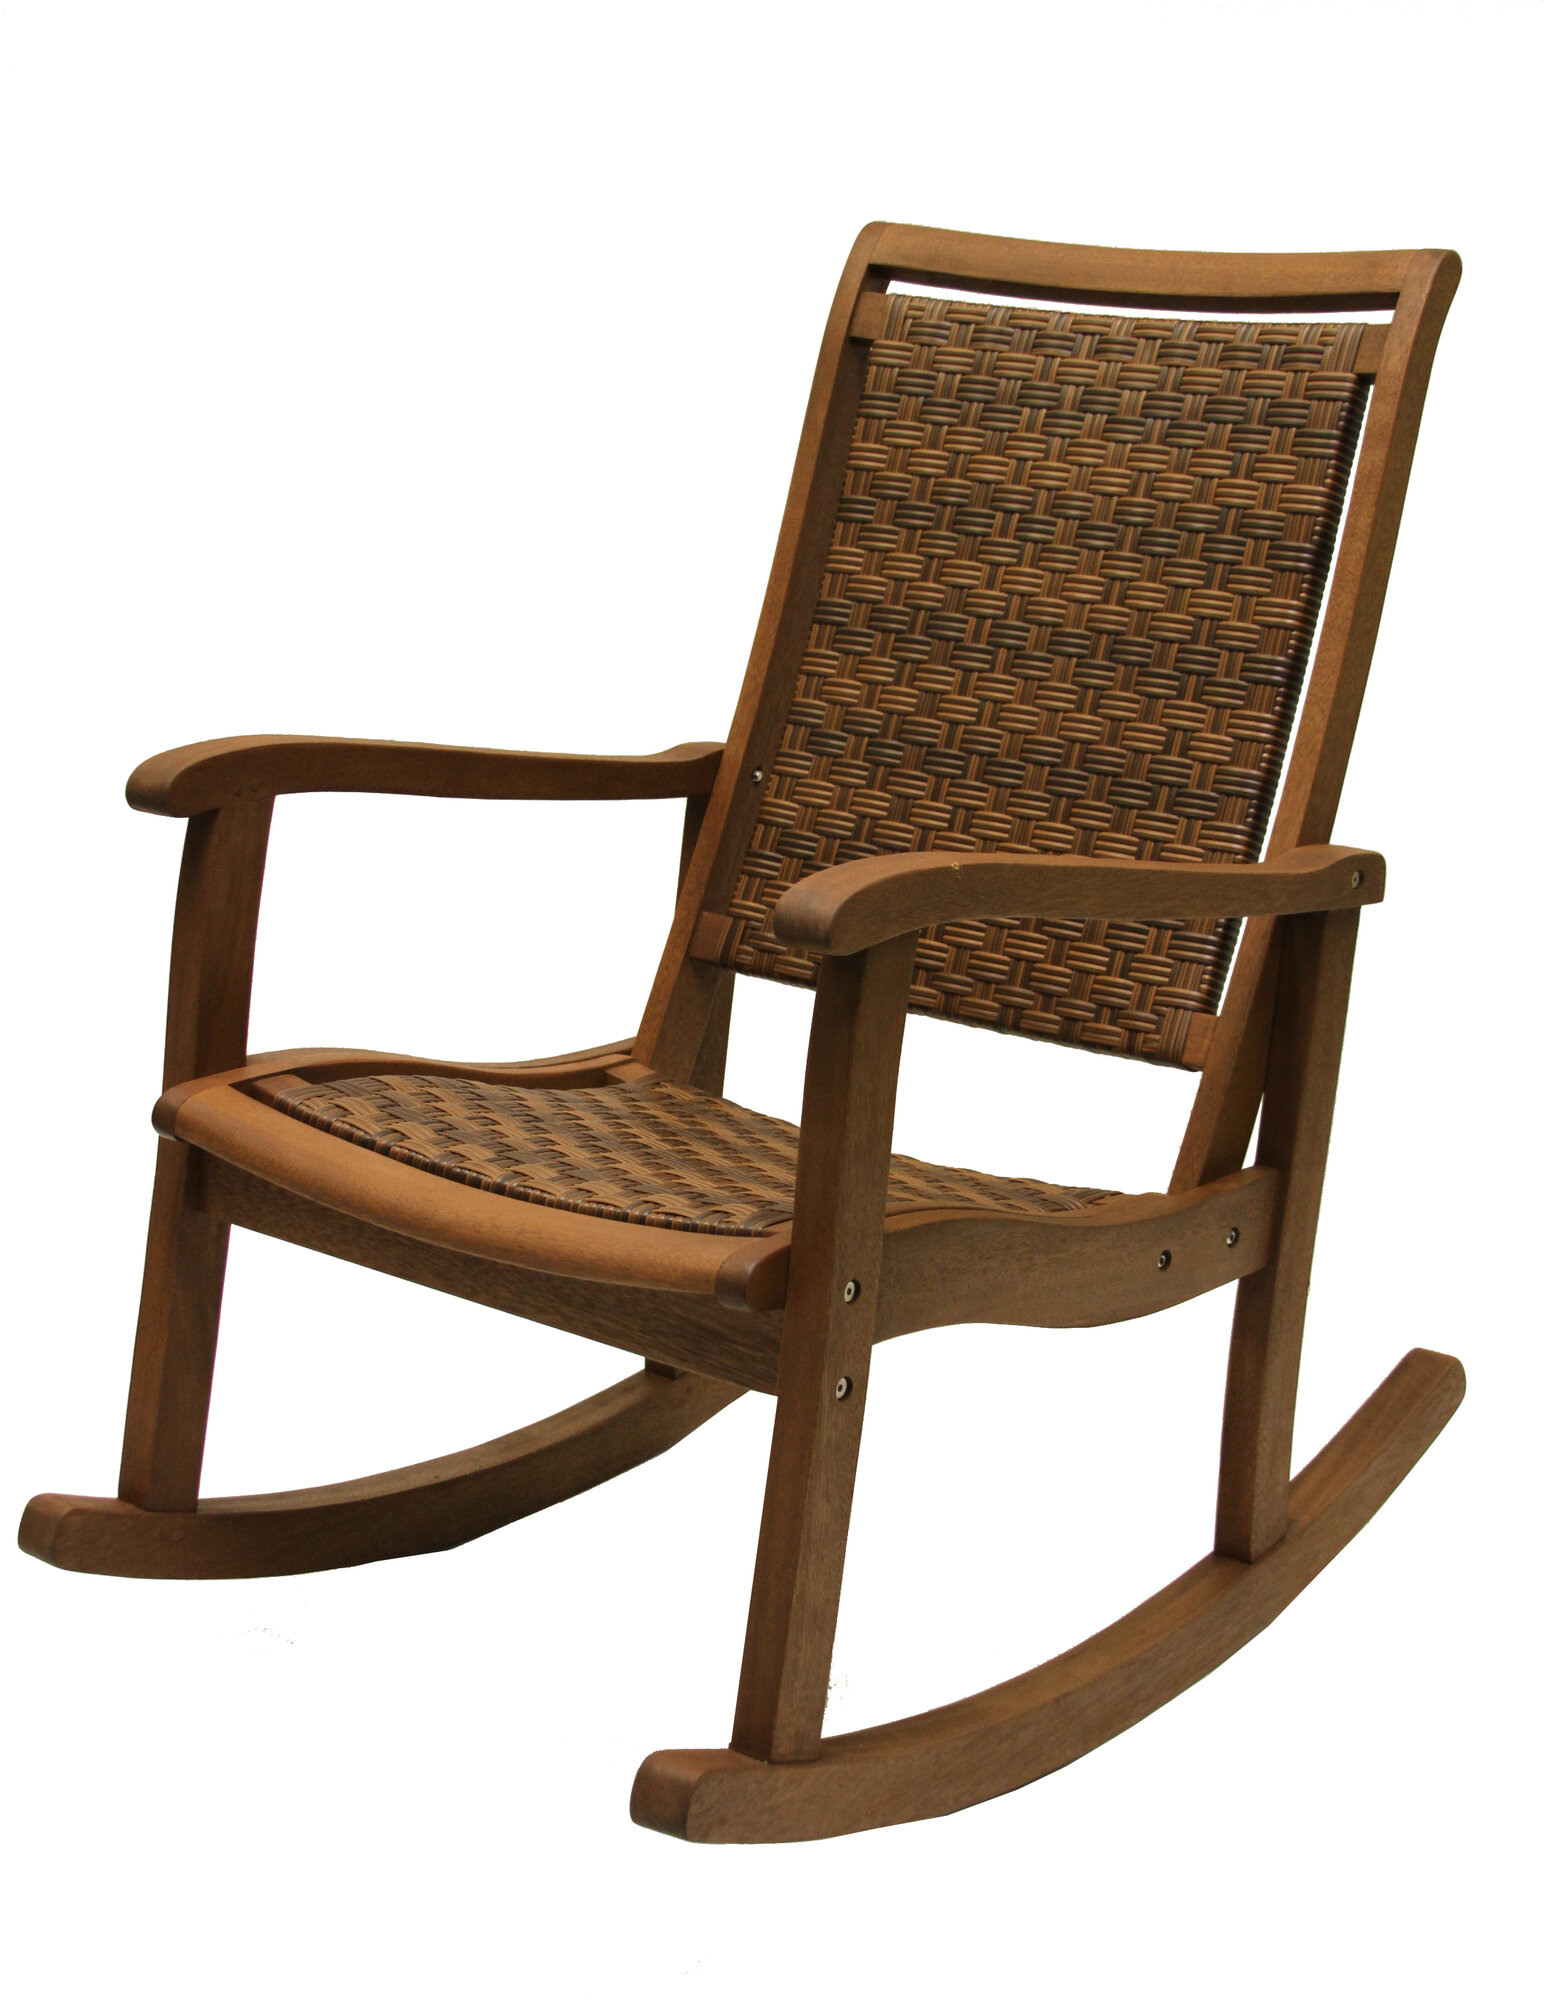 Outdoor Interiors Resin Wicker And Eucalyptus Rocker Chair EBay